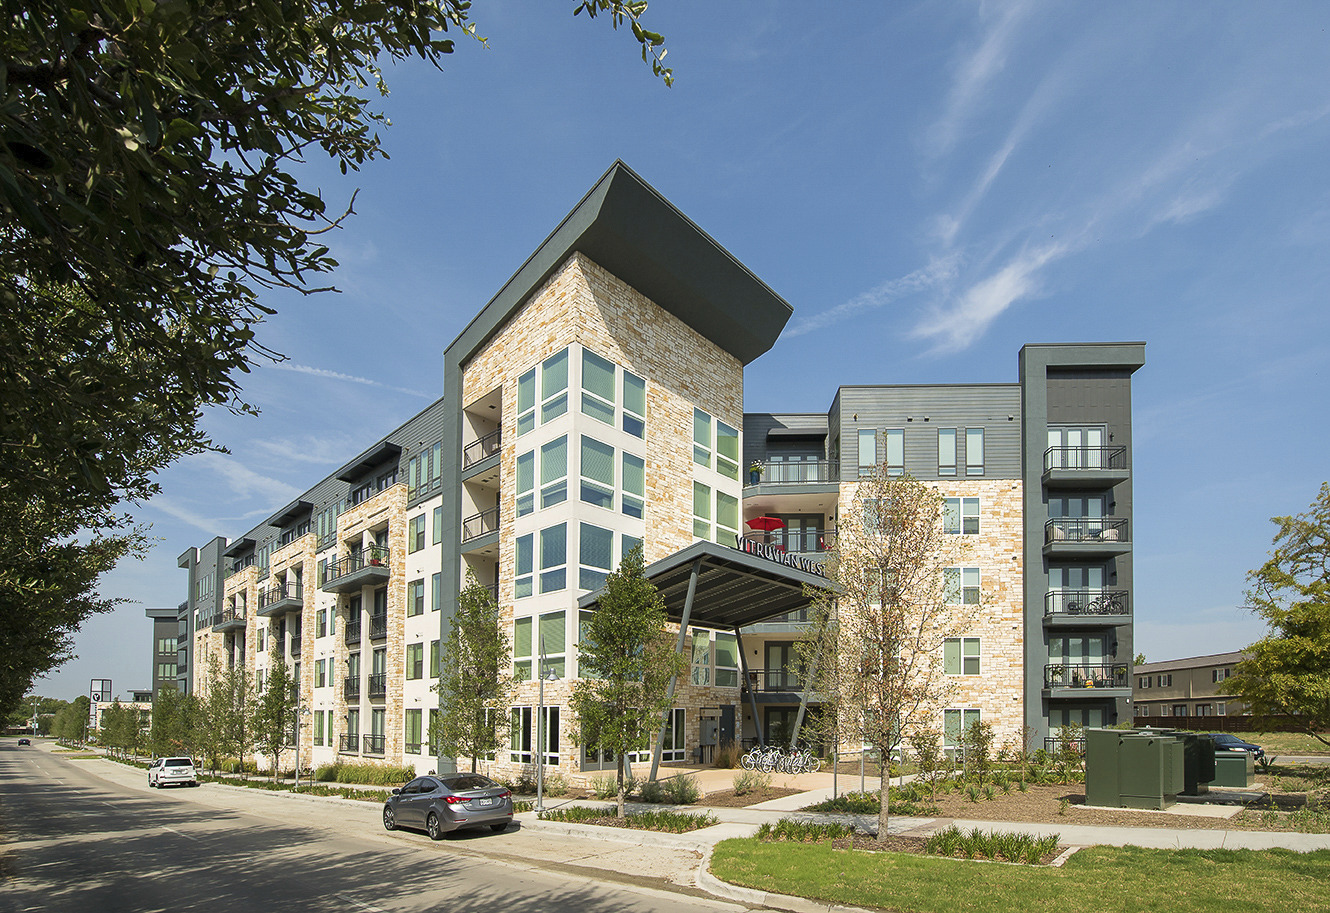 CBG builds Vitruvian West, a LEED® Silver Luxury Apartment Community with Amenities in Addison, TX - Image #1